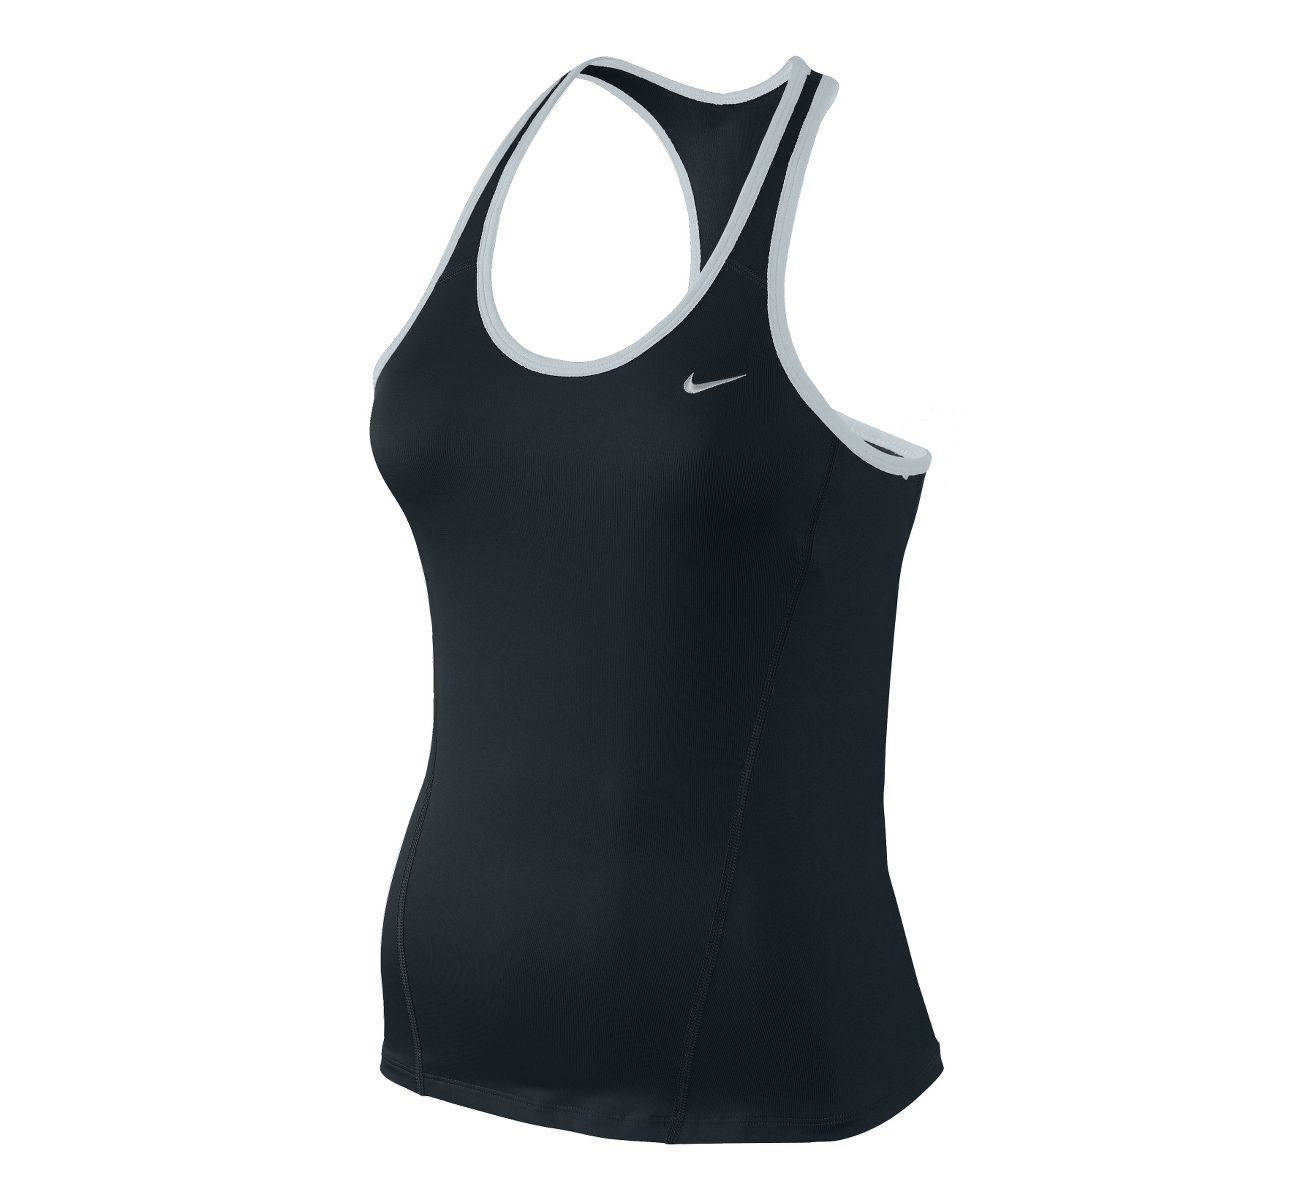 Womens Nike Long Shaping Sport Top Bras at Road Runner Sports